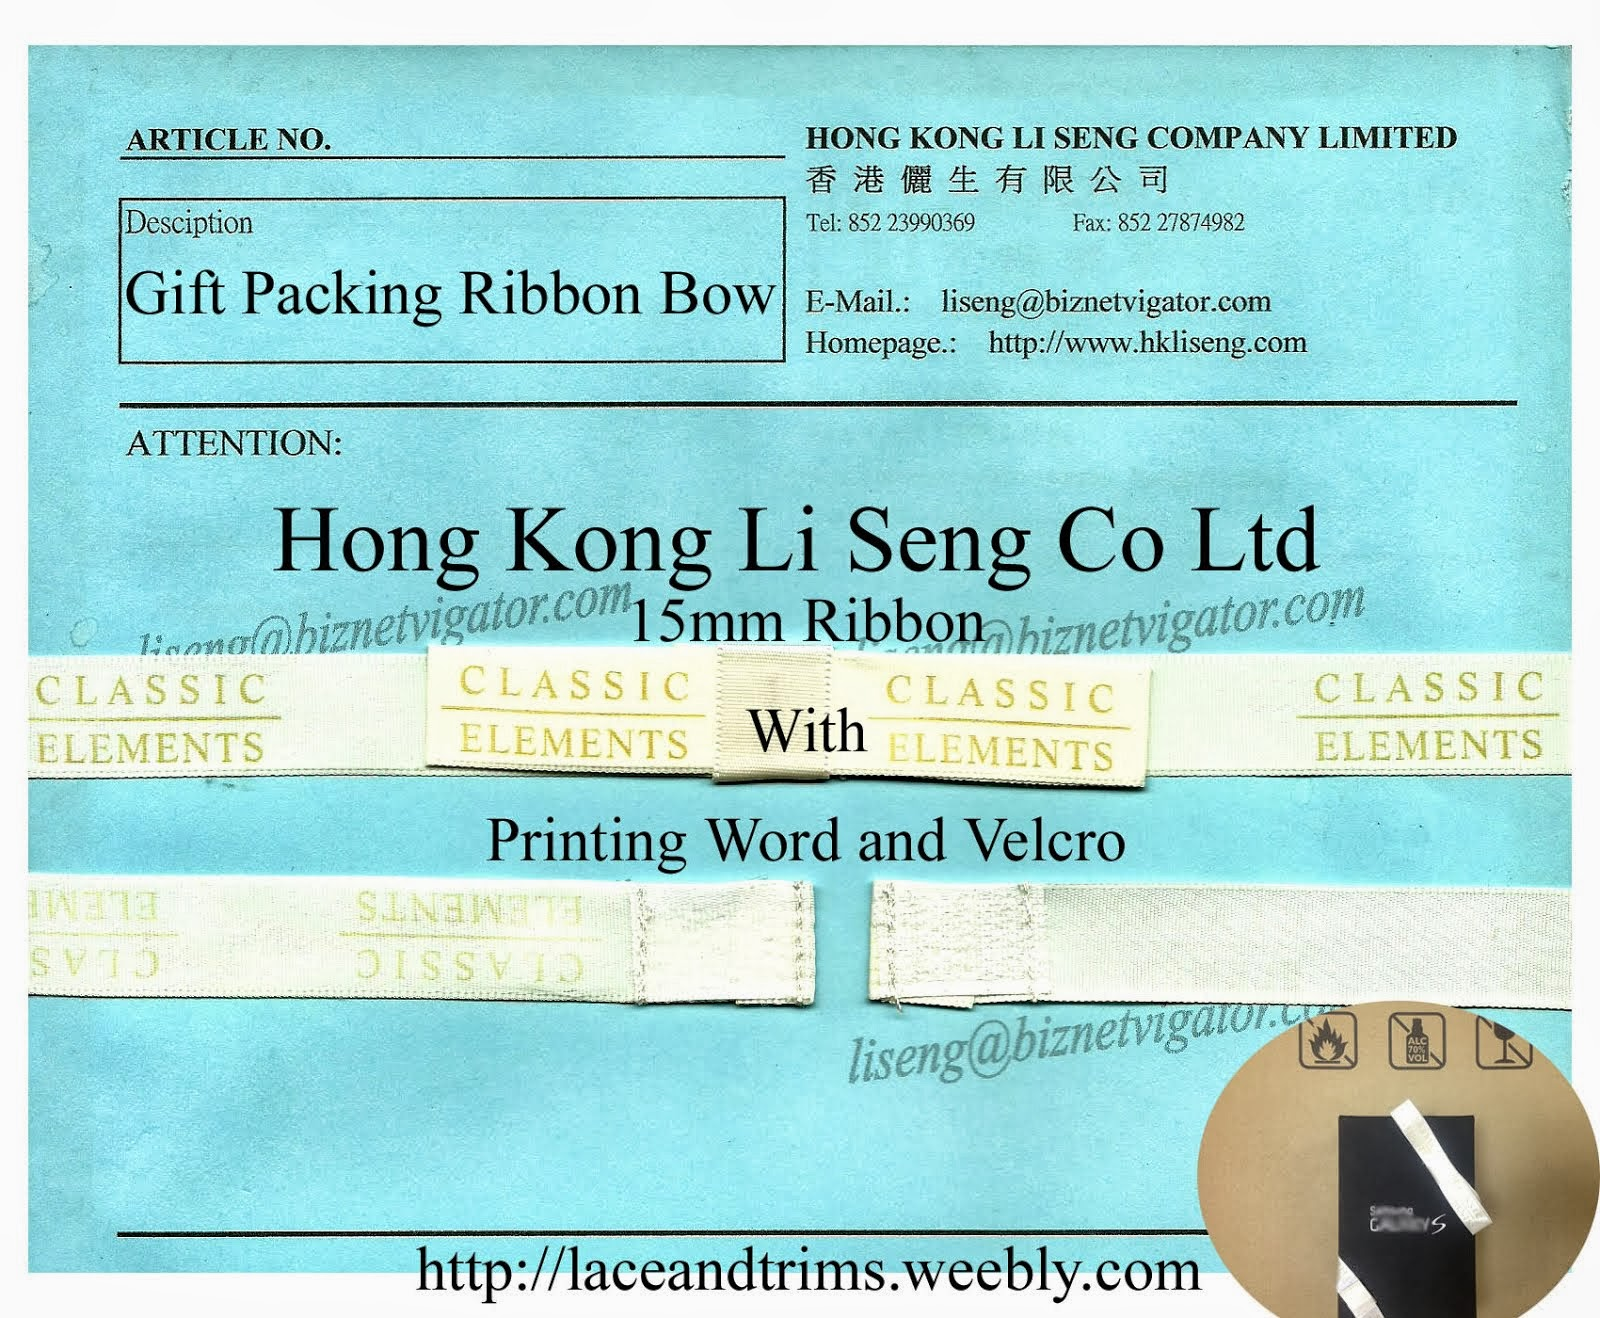 Gift Packing Ribbon Bow Manufacturer Wholesale Supplier Hong Kong Li Seng Co Ltd